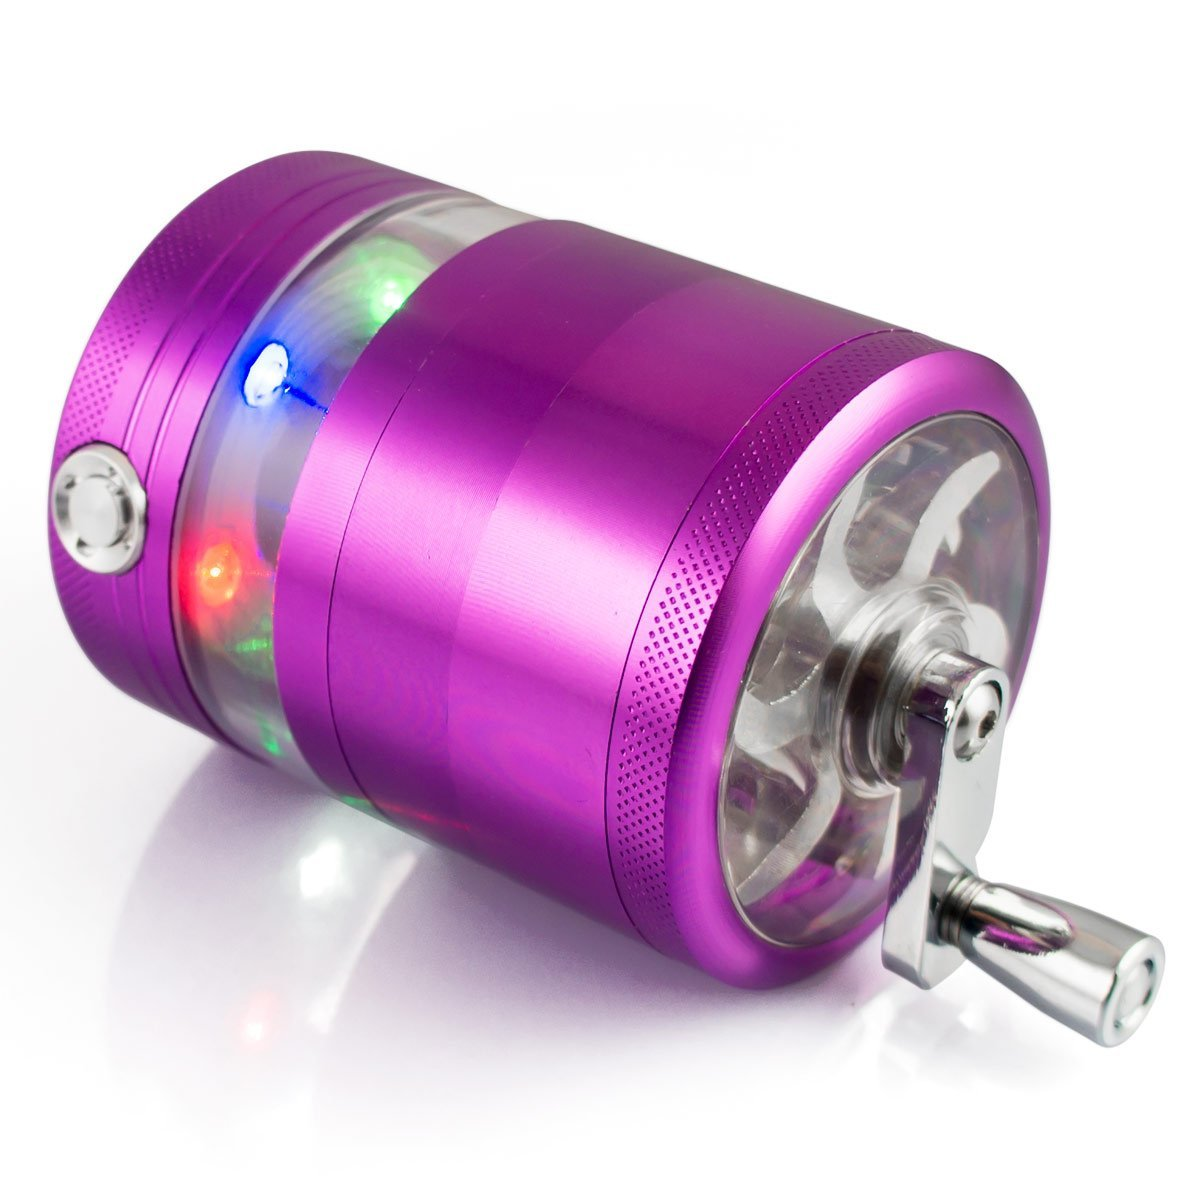 Formax420 Handle Grinder For Tobacco Spice Mill Crusher With LED 5 Parts 2.5 inch (Purple) AX-AY-ABHI-111957